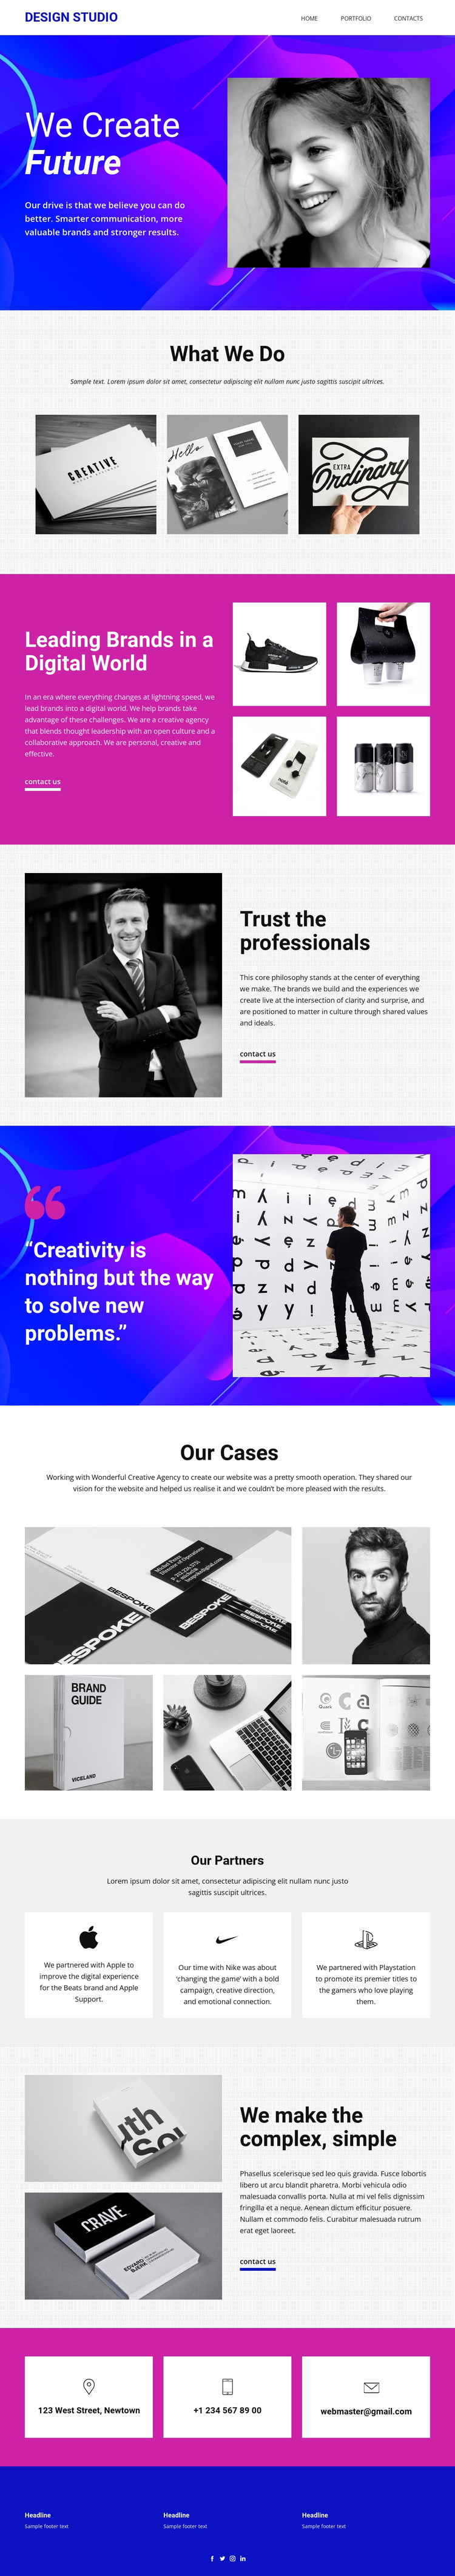 We develop the brand's core One Page Template